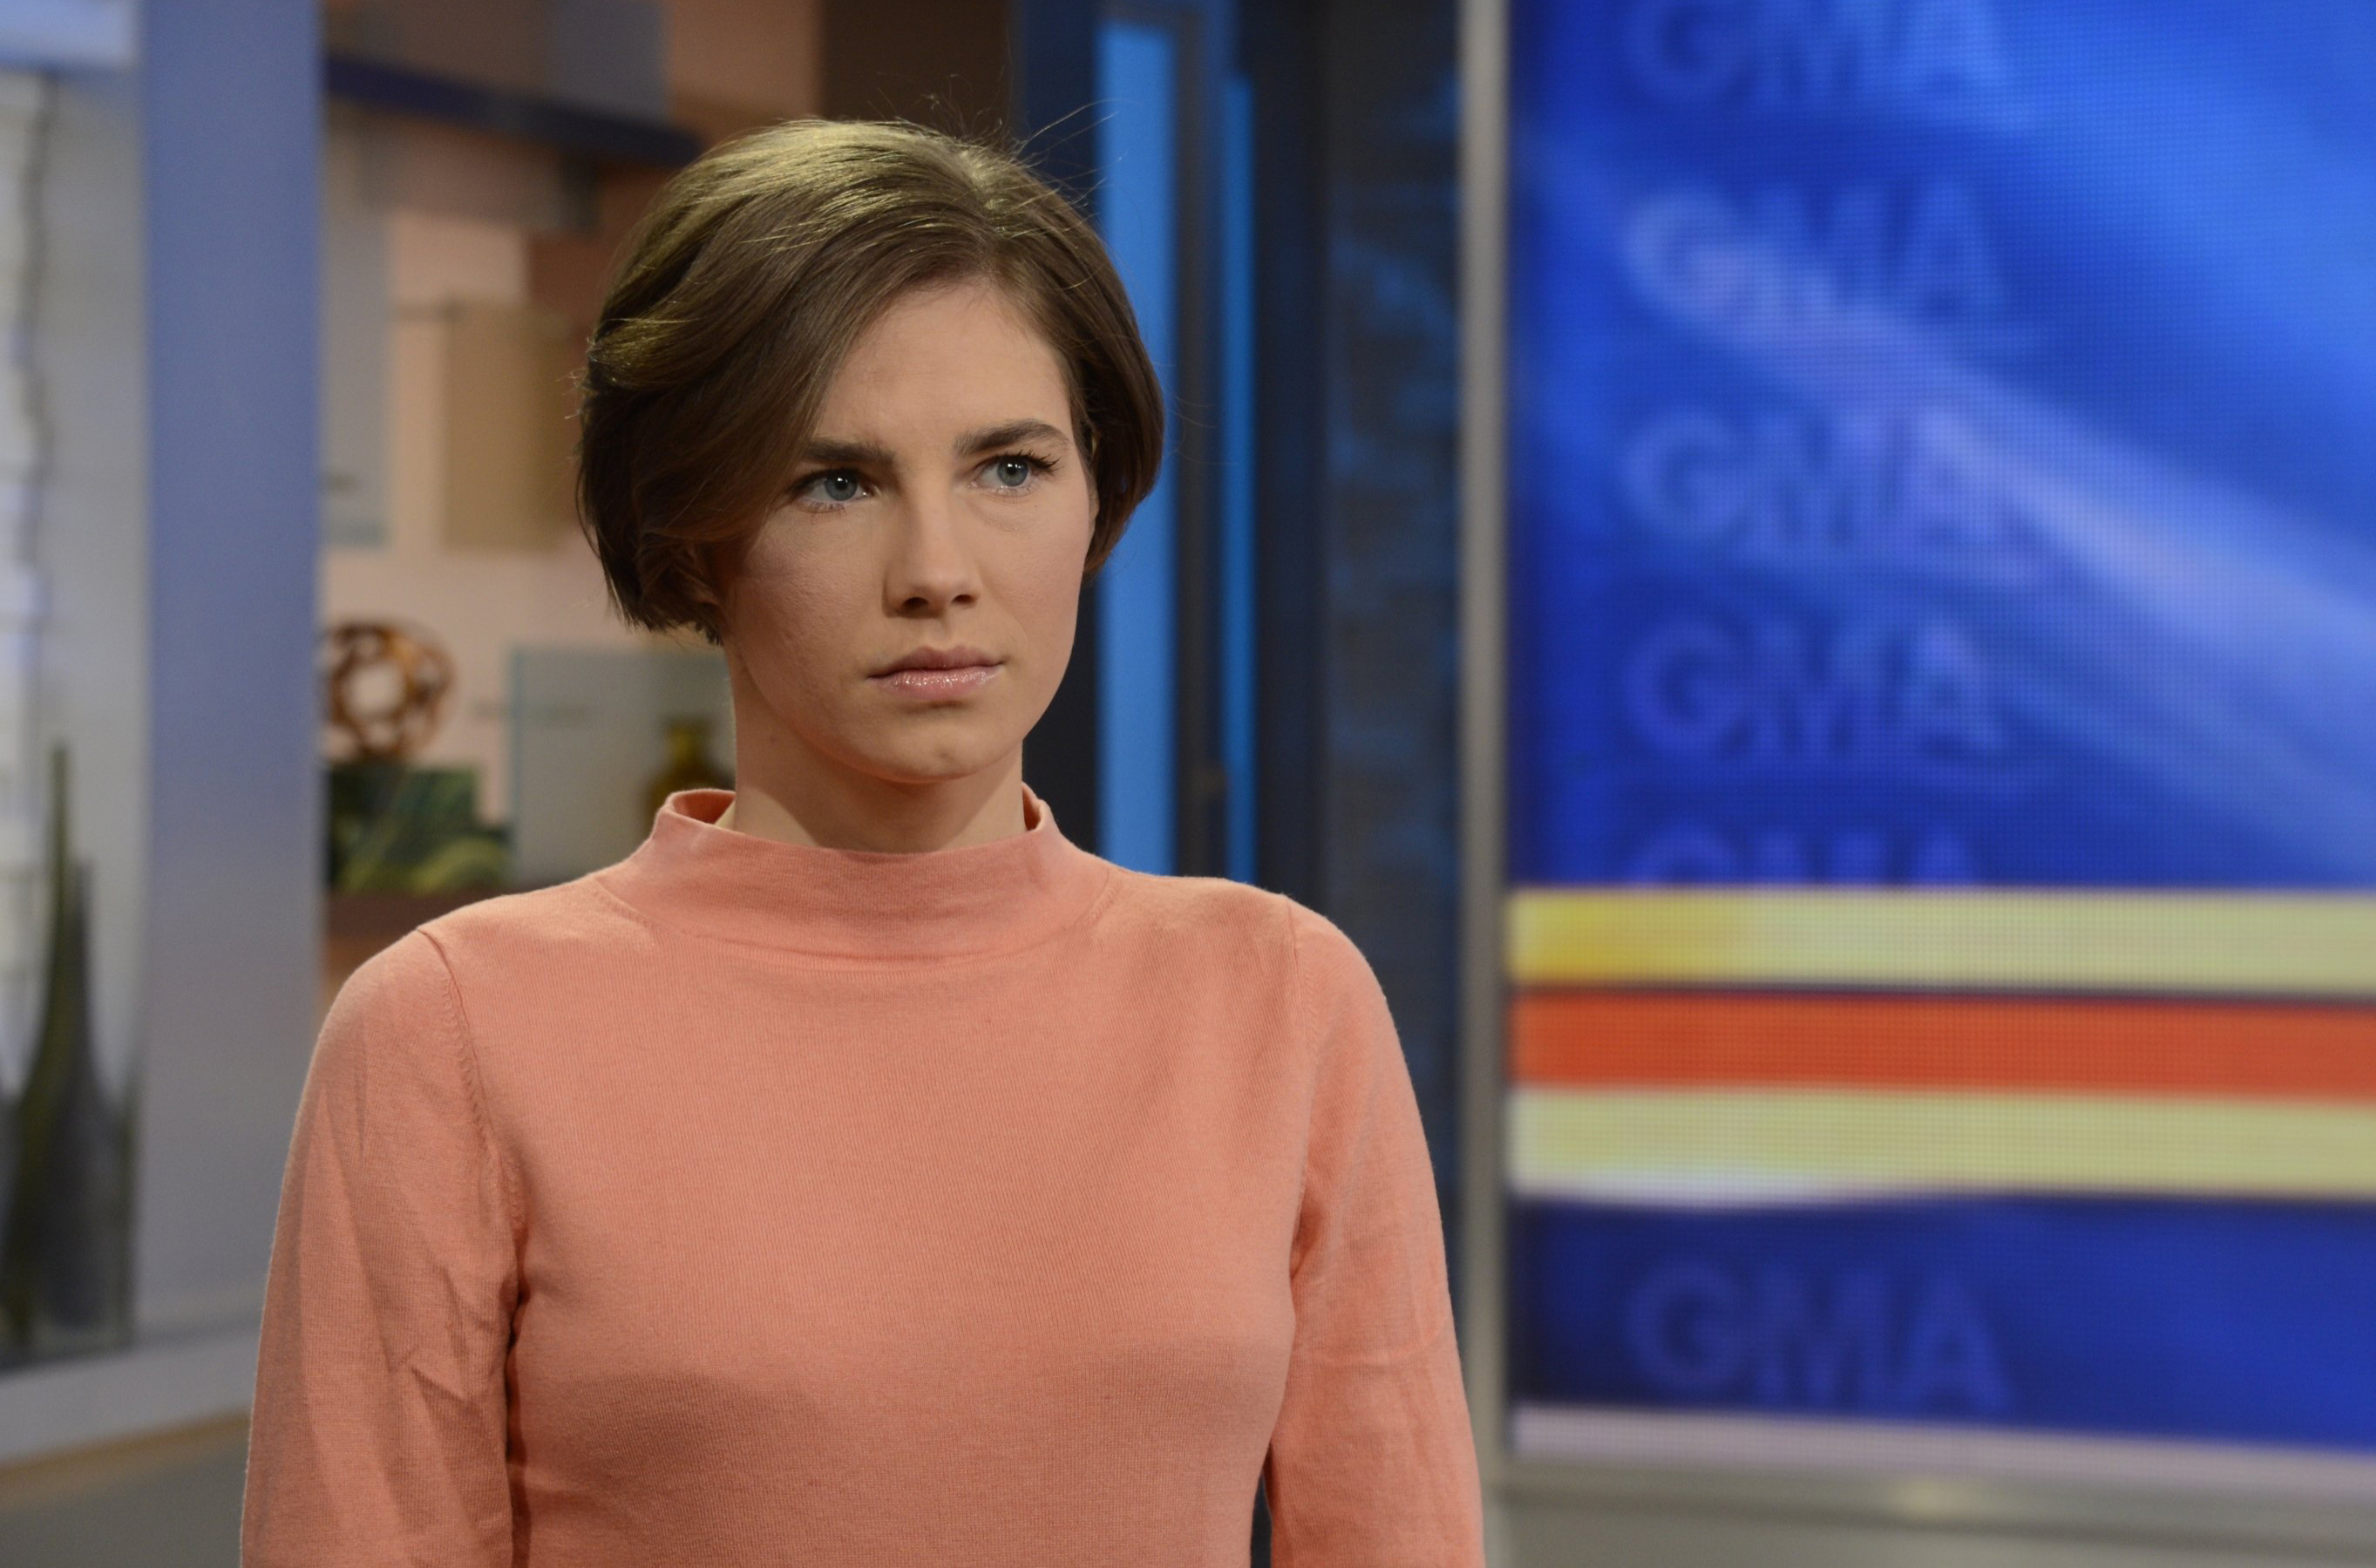 Amanda Knox on ABC's Good Morning America, on Jan. 1, 2014.